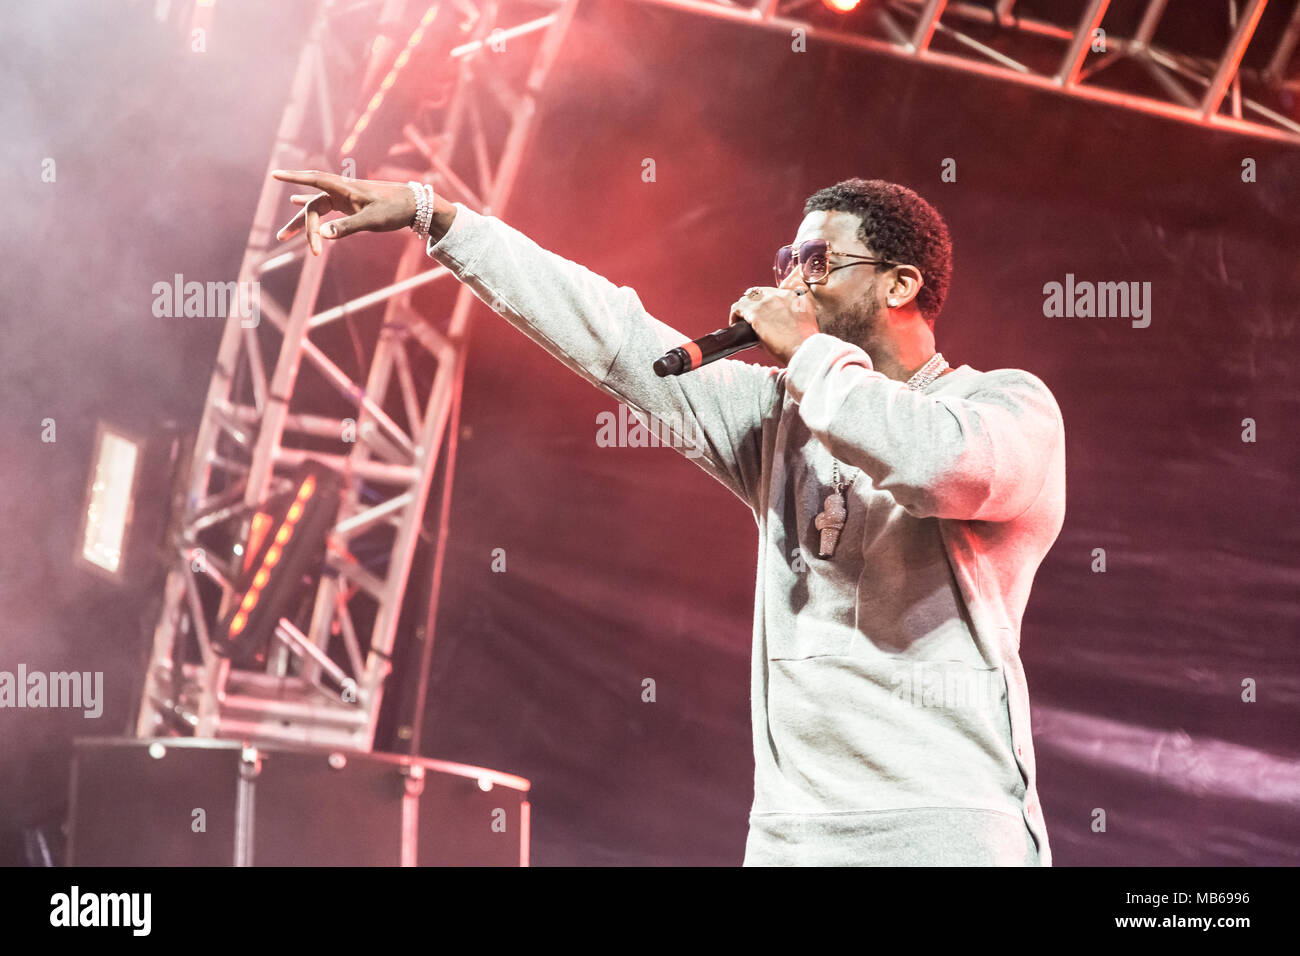 Gucci Mane Stock Photos & Gucci Mane Stock Images - Alamy